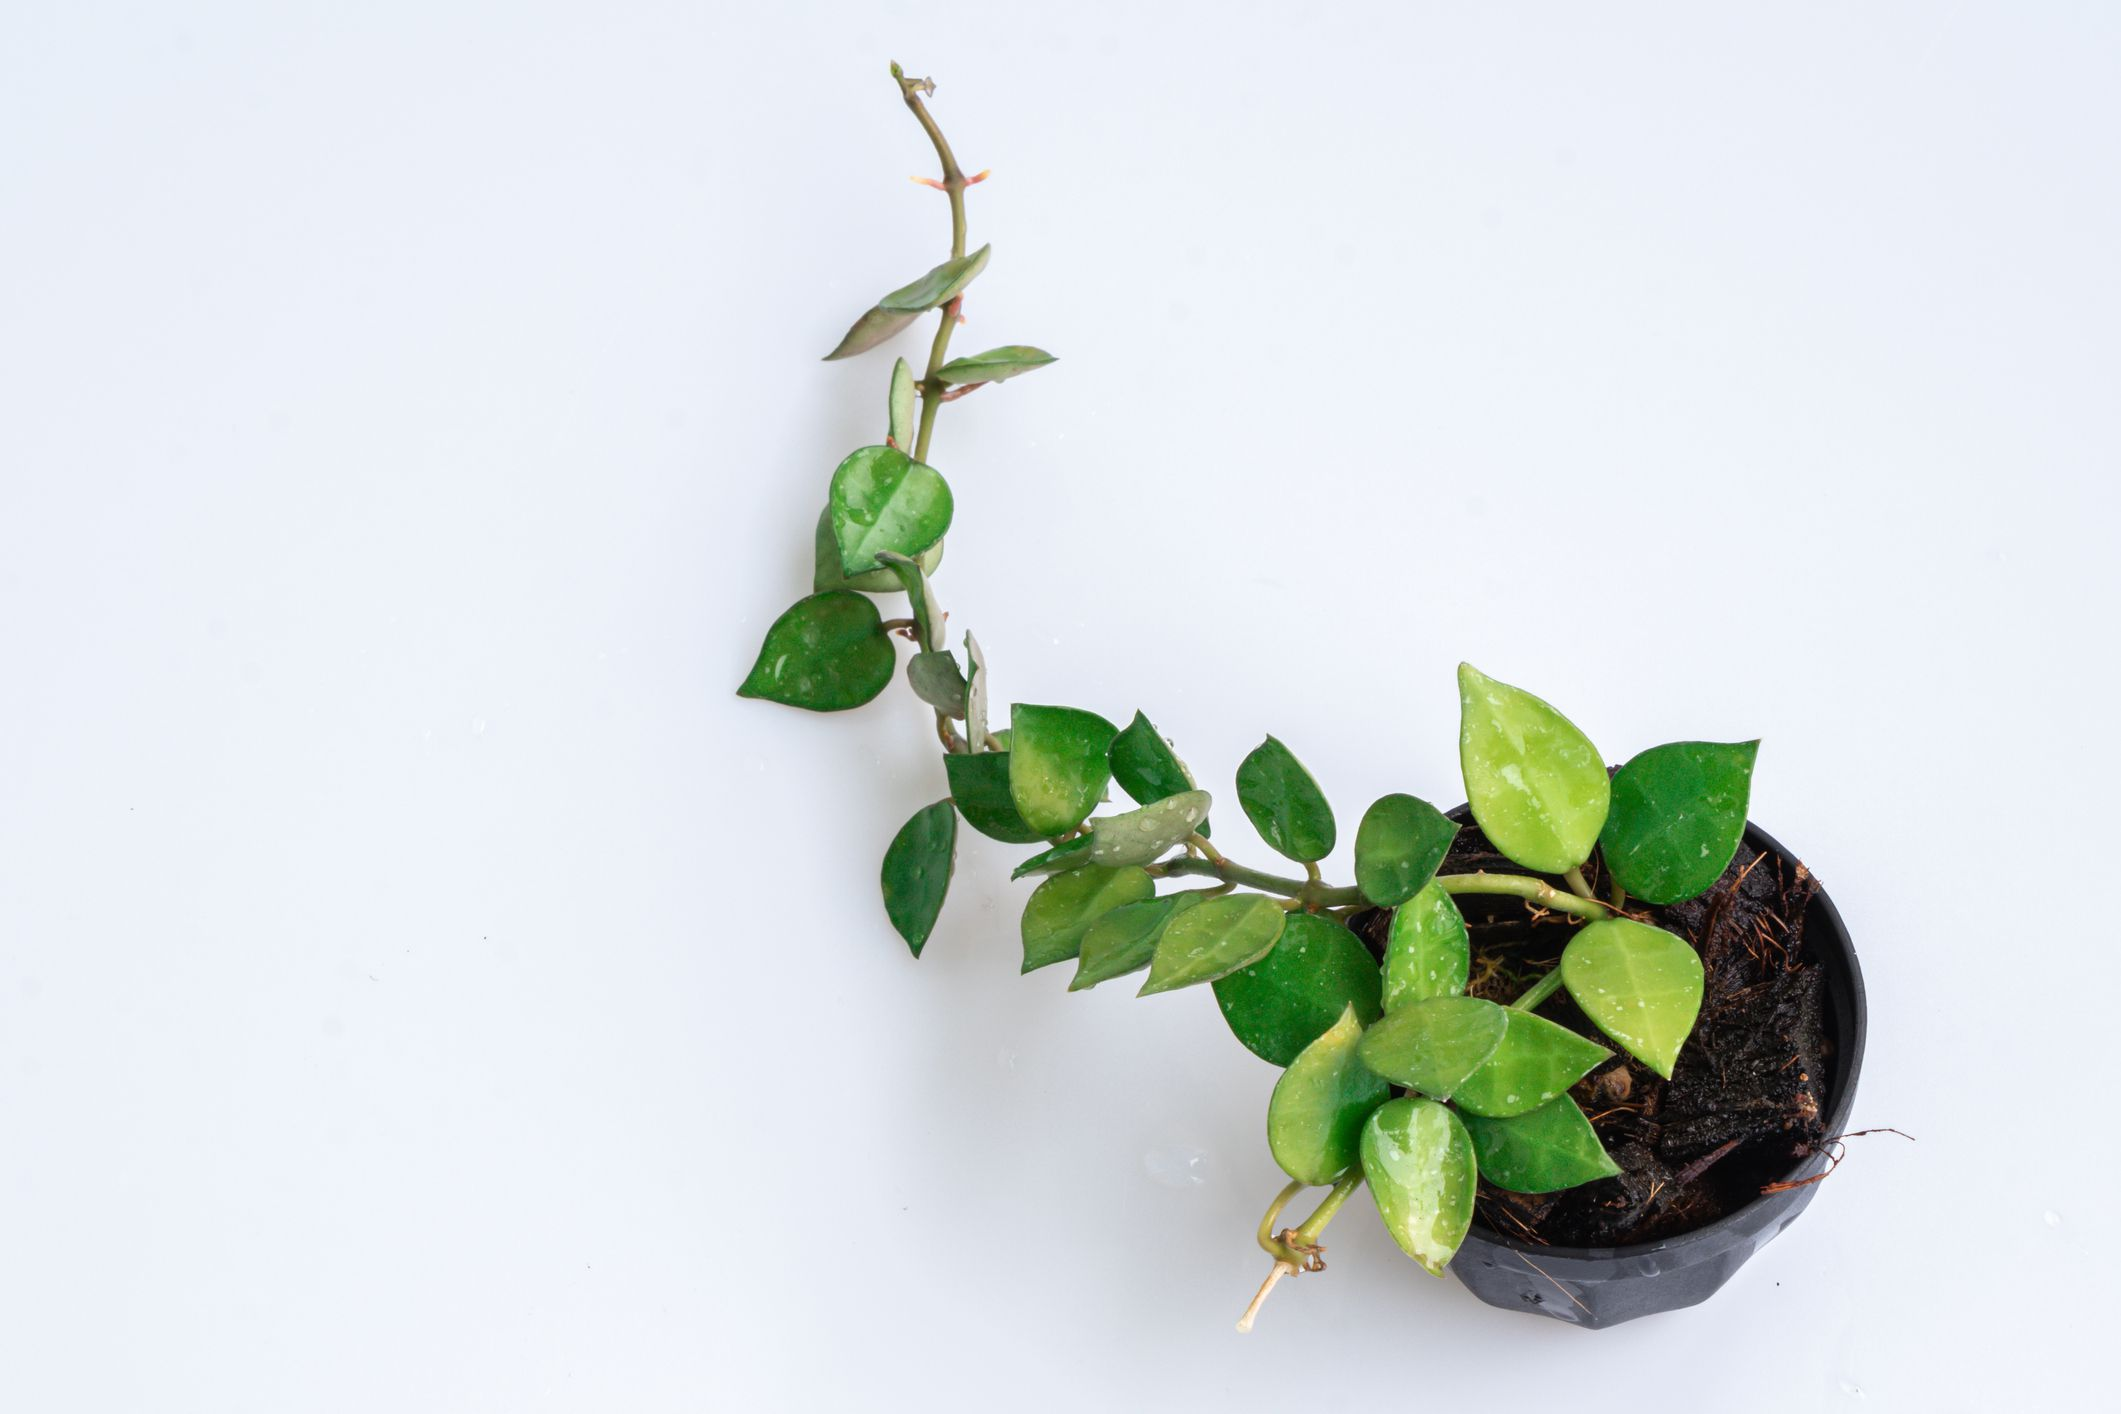 Overhead view of a Hoya krohniana in a black pot on a white background.